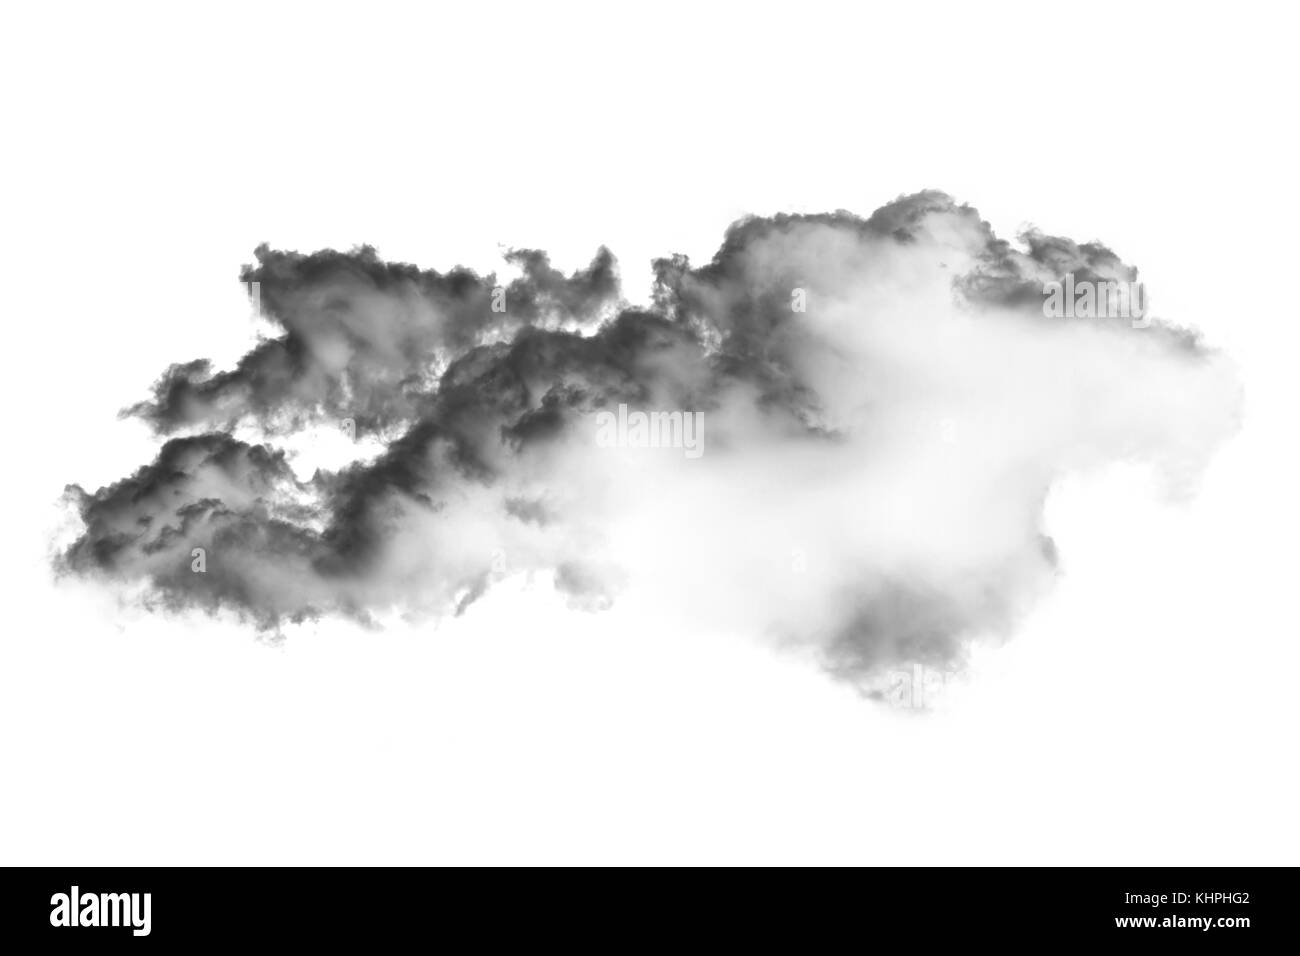 cloud and smoke isolated on white, background and texture - Stock Image